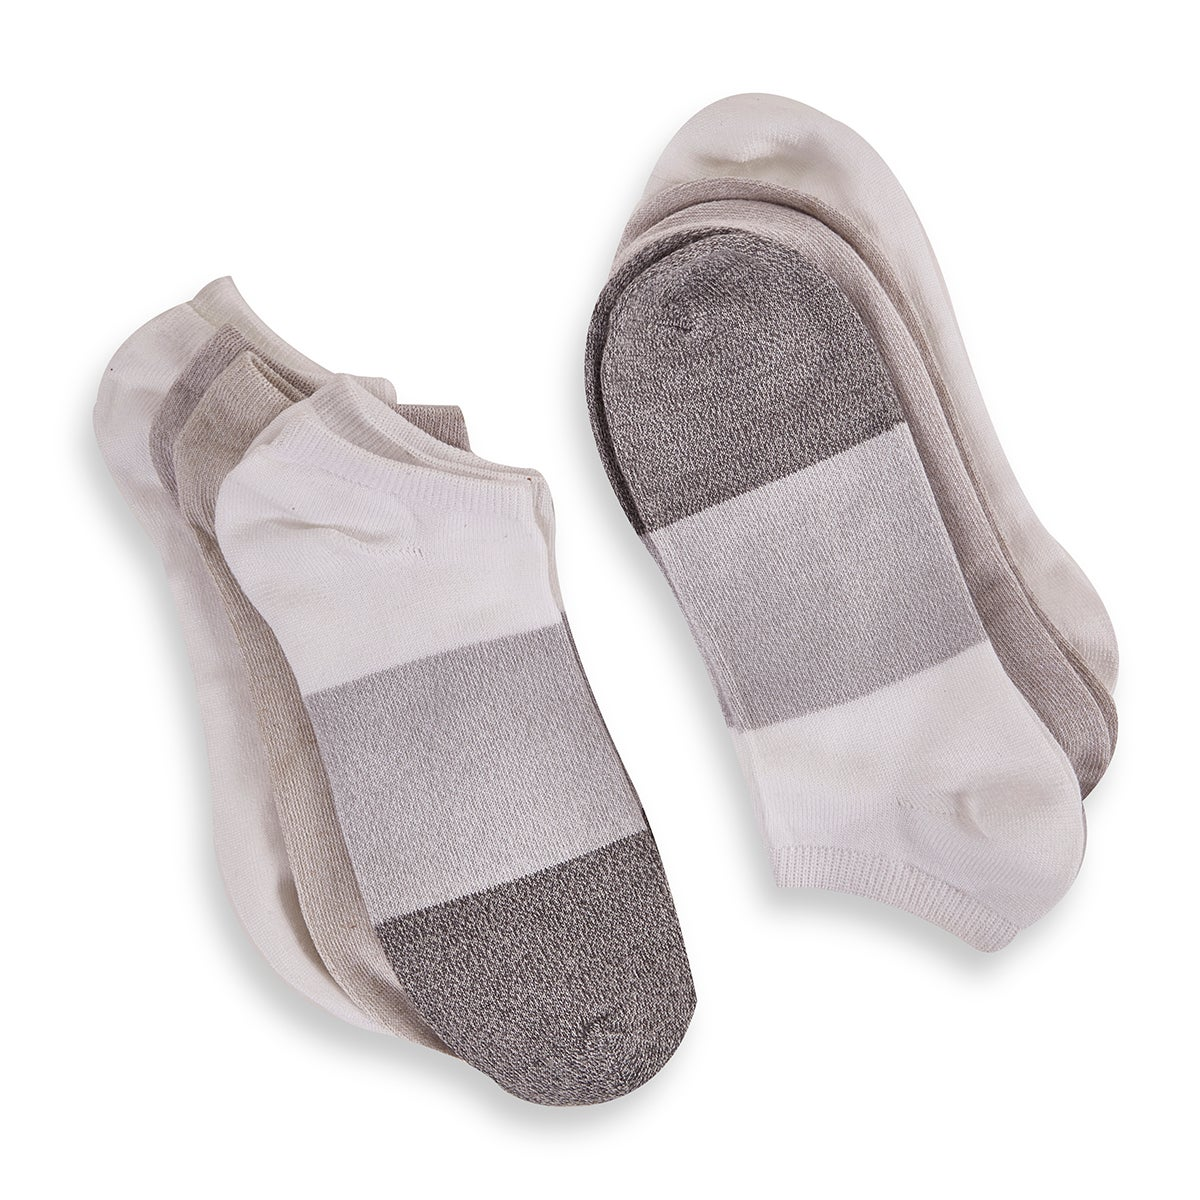 Women's Soft & Dreamy No Show Sock - Grey Multi